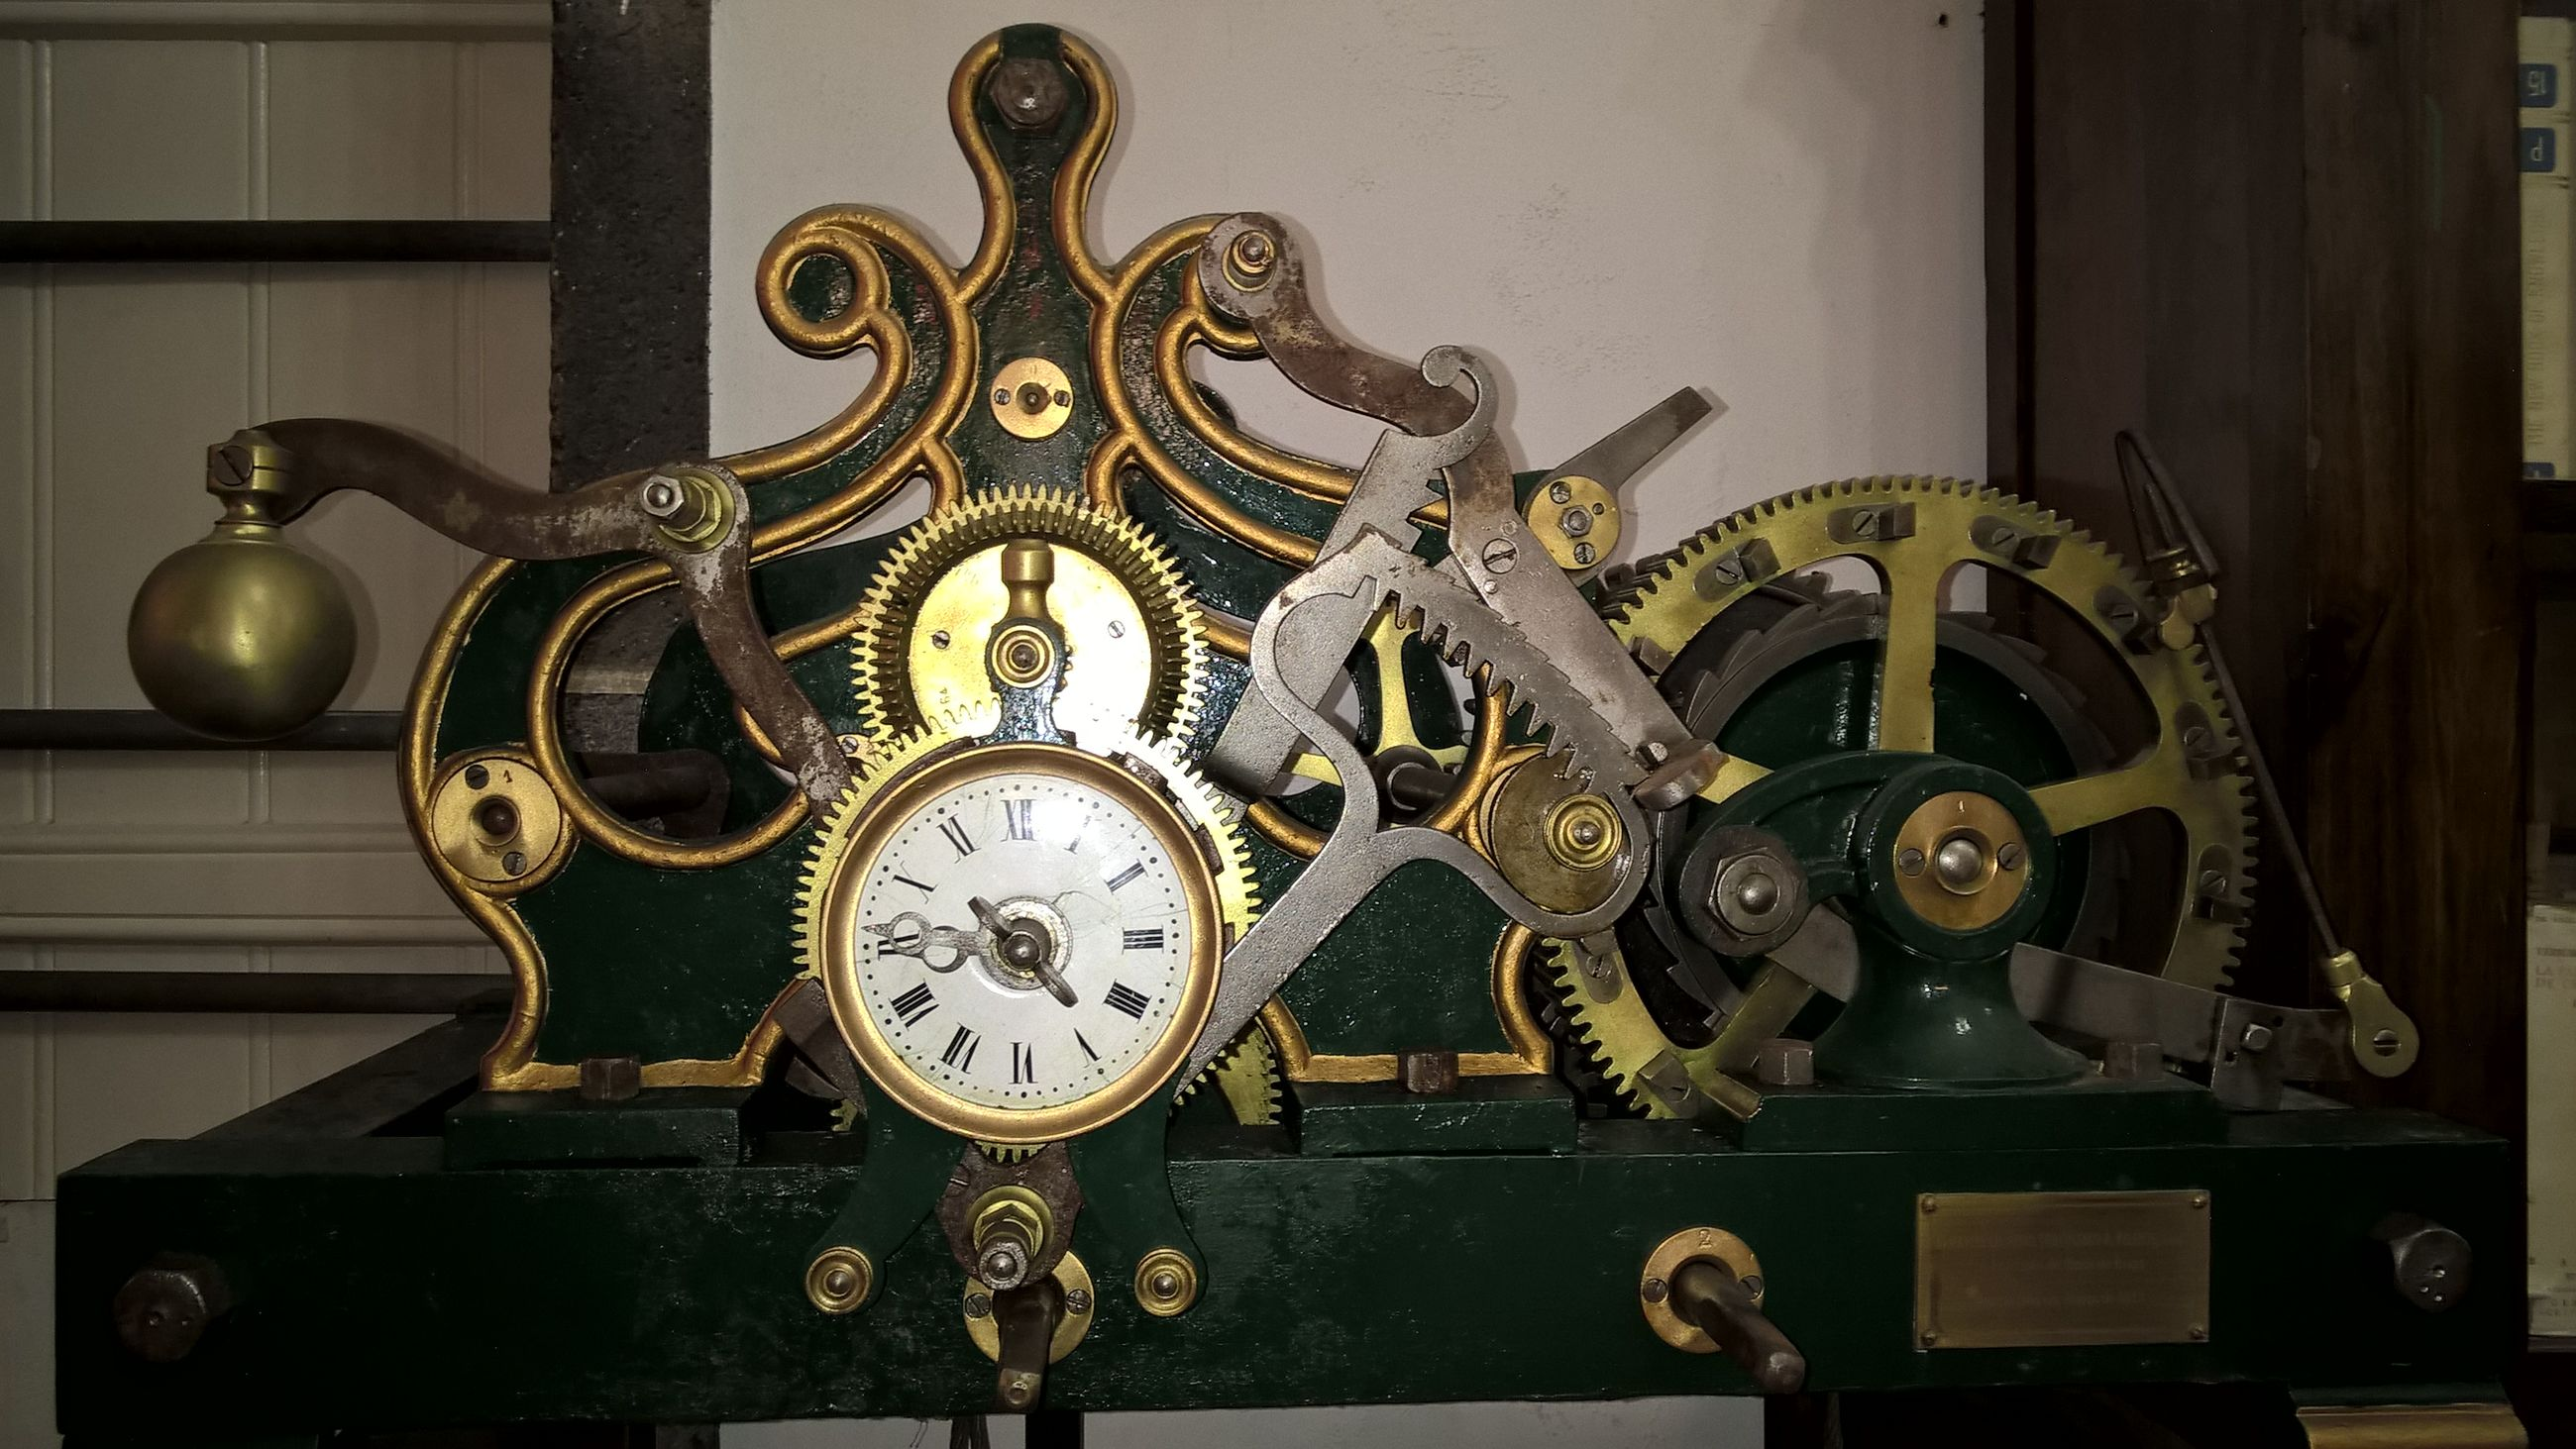 indoors, antique, old-fashioned, clock, retro styled, time, wall - building feature, old, art and craft, metal, art, close-up, technology, built structure, number, ornate, no people, architecture, creativity, hanging